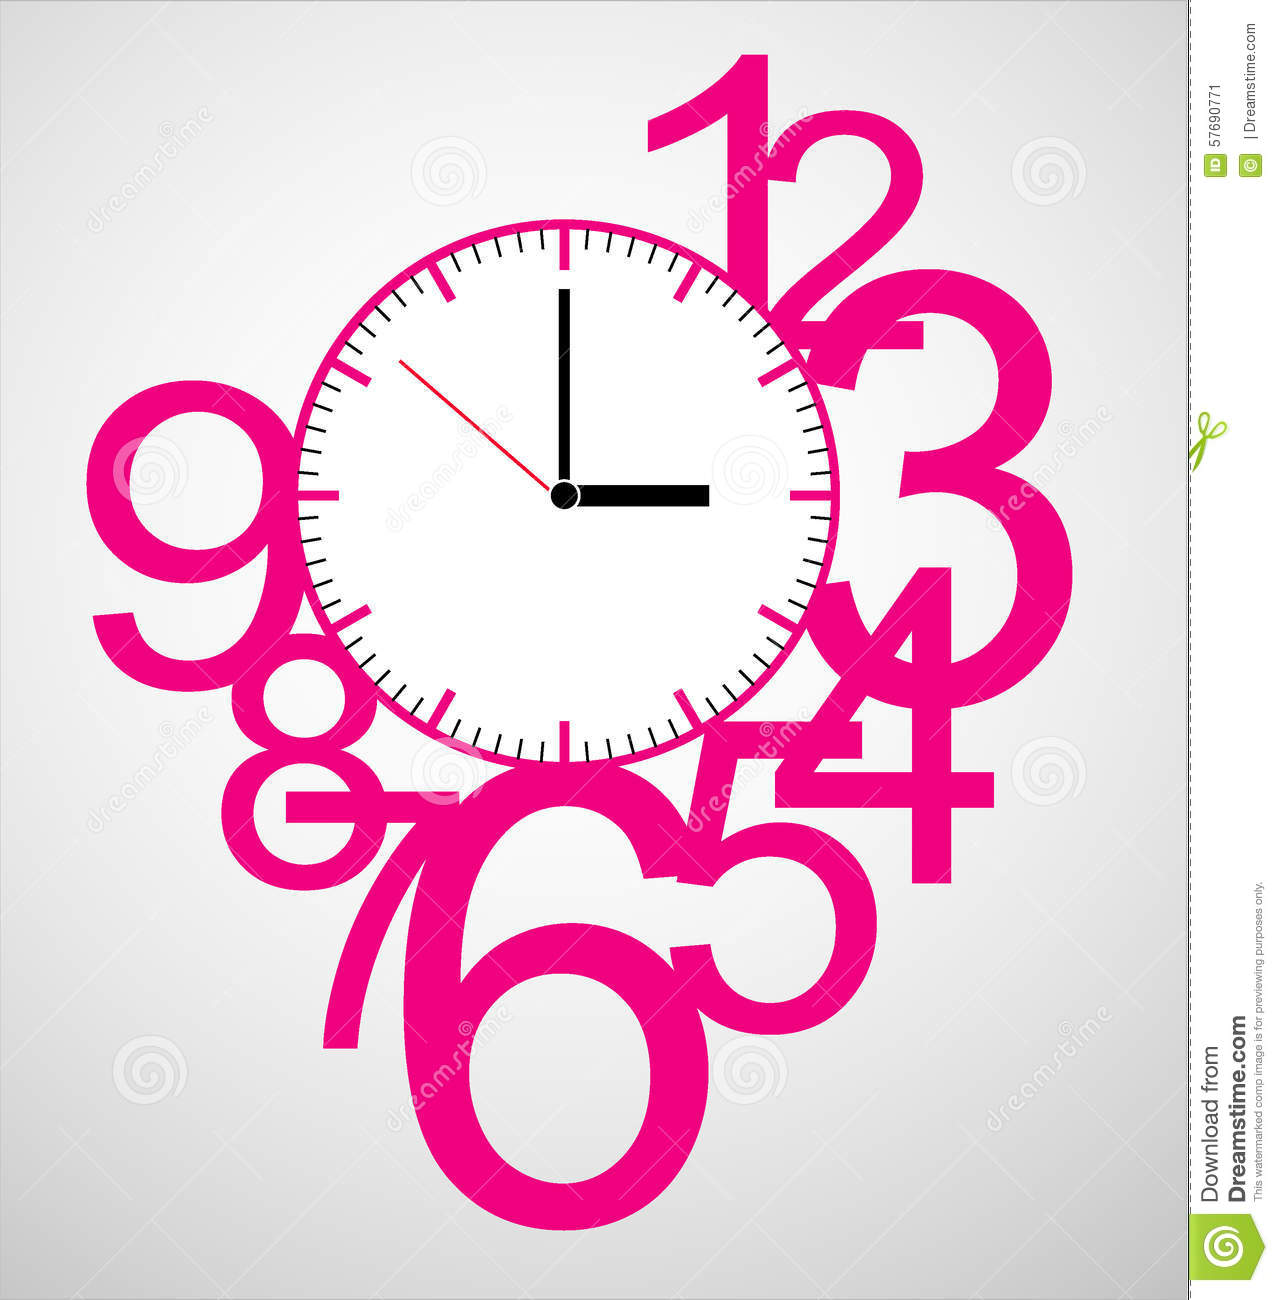 Creative clock face design stock vector illustration for Blueprint number